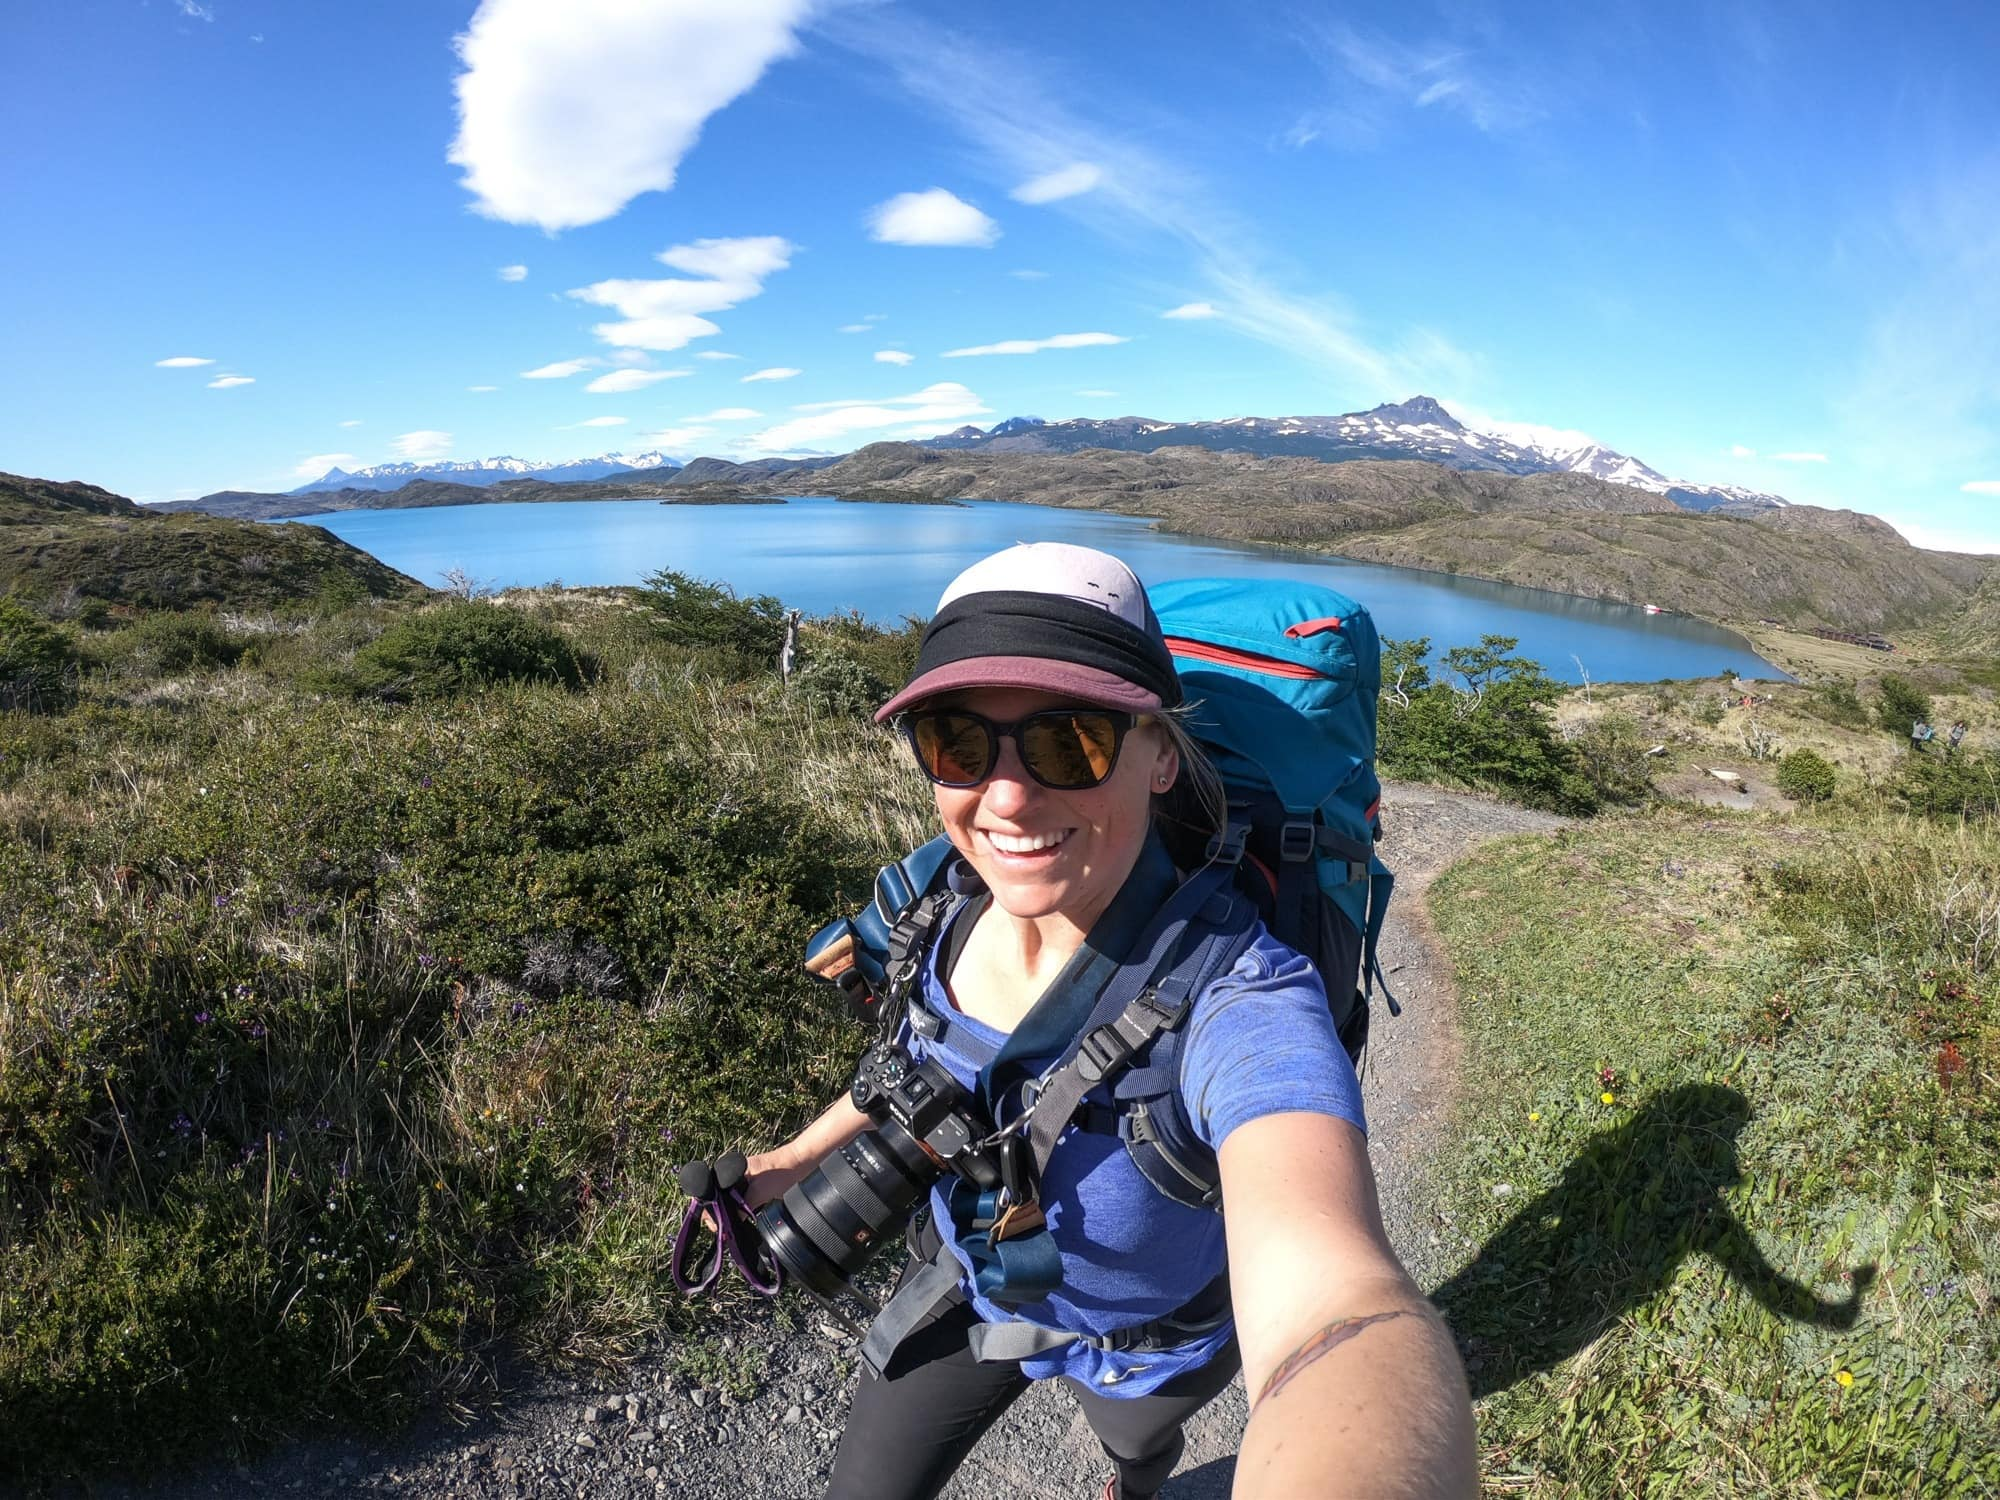 Want to hike the W Trek in Torres Del Paine? My W Trek packing list will have you prepared for hiking & camping on this bucket-list trail in Patagonia.